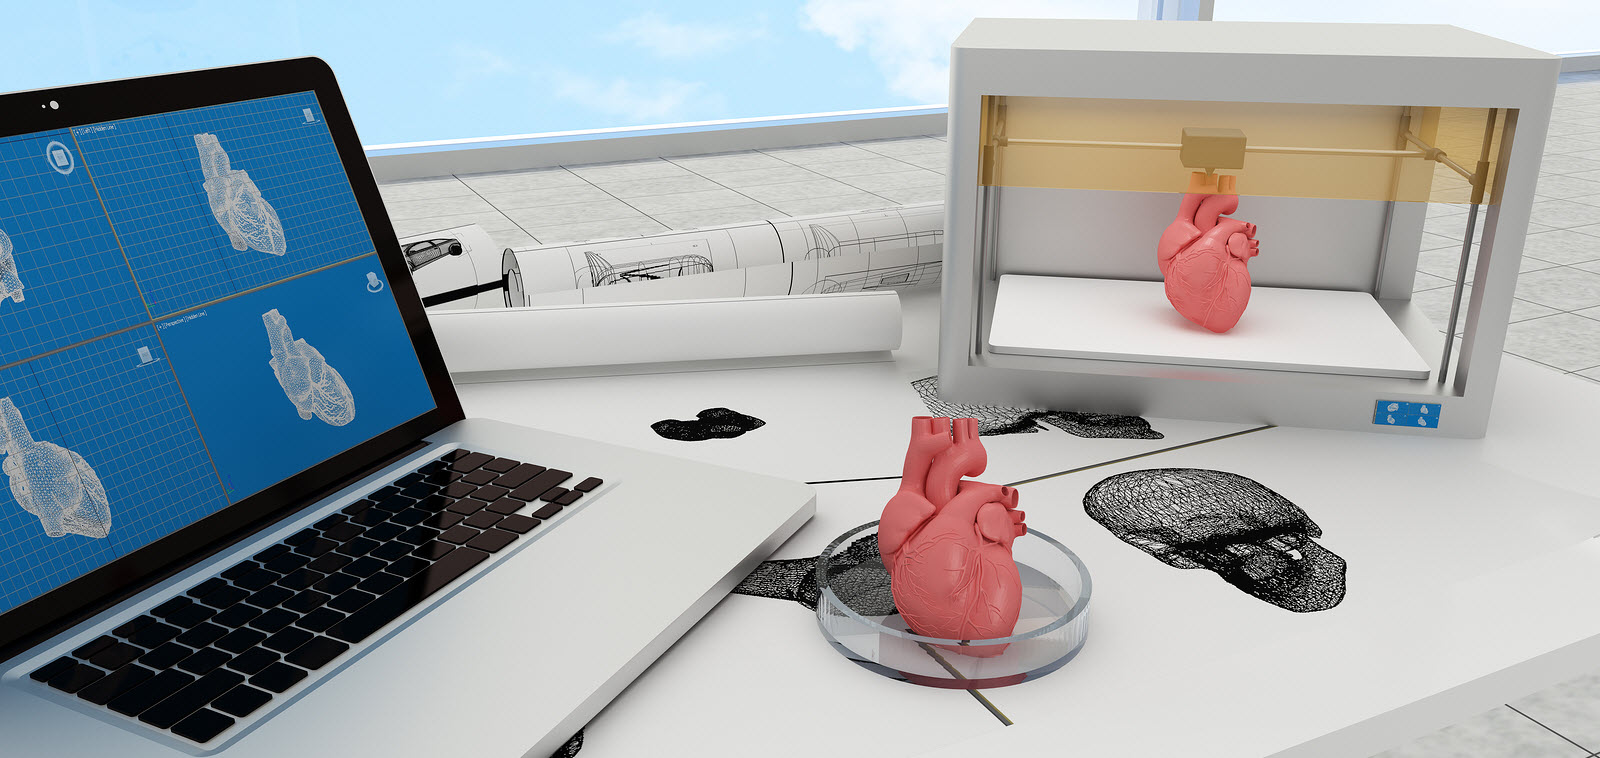 Just Print It: 5 Applications  of 3D Printing Shaping the Future of Healthcare